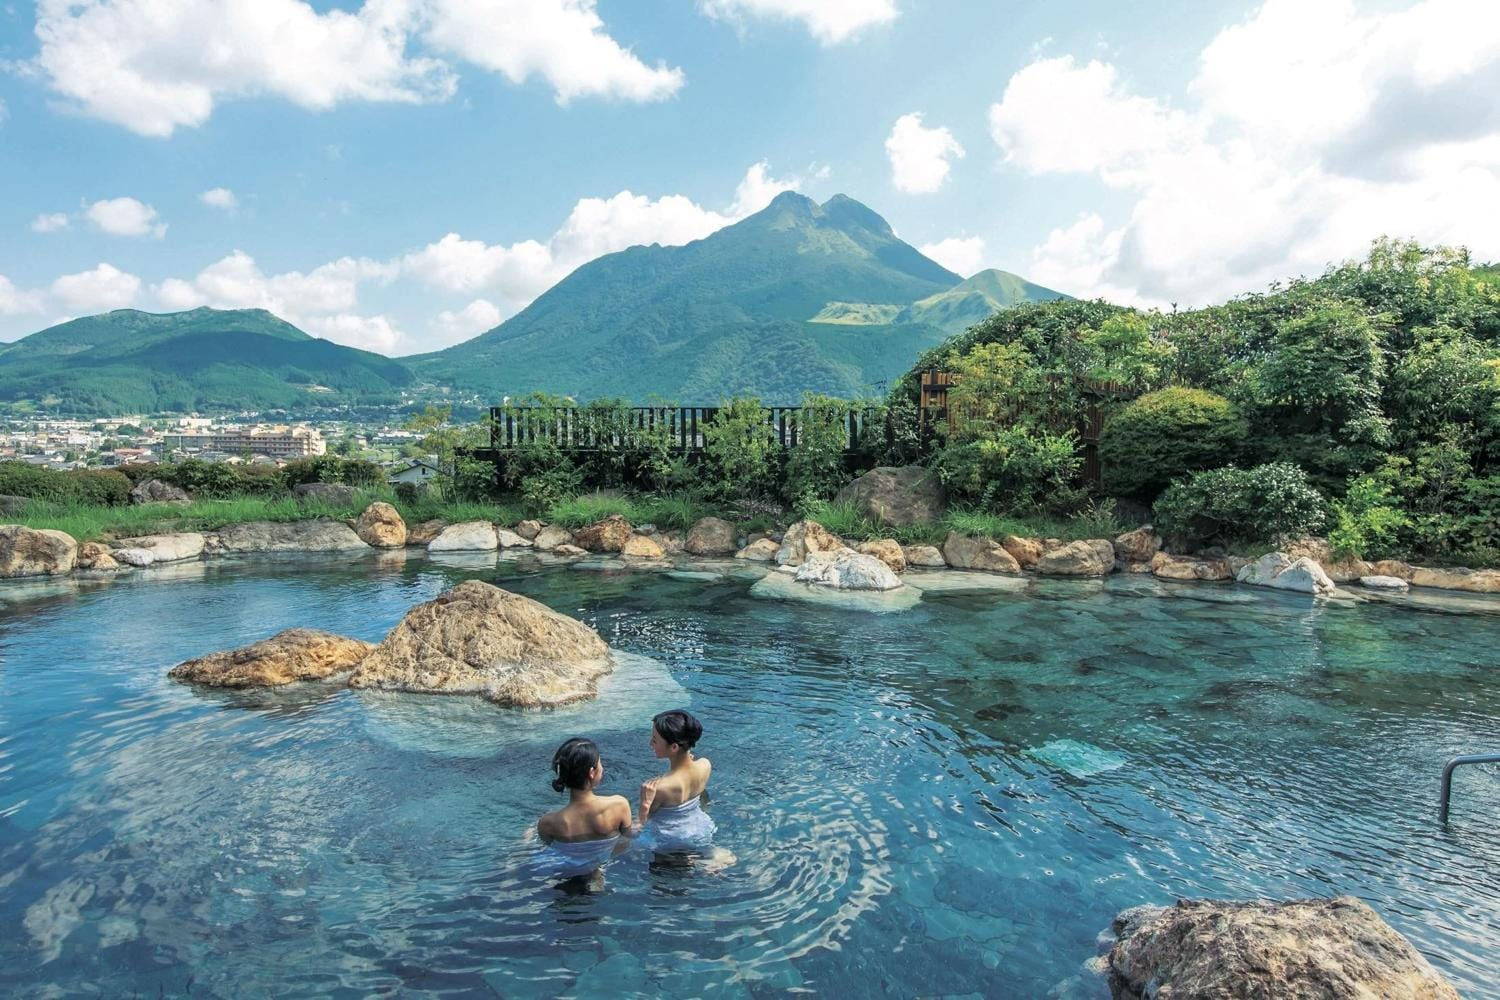 My First Onsen Hot Spring Experience In Yufuin Japan